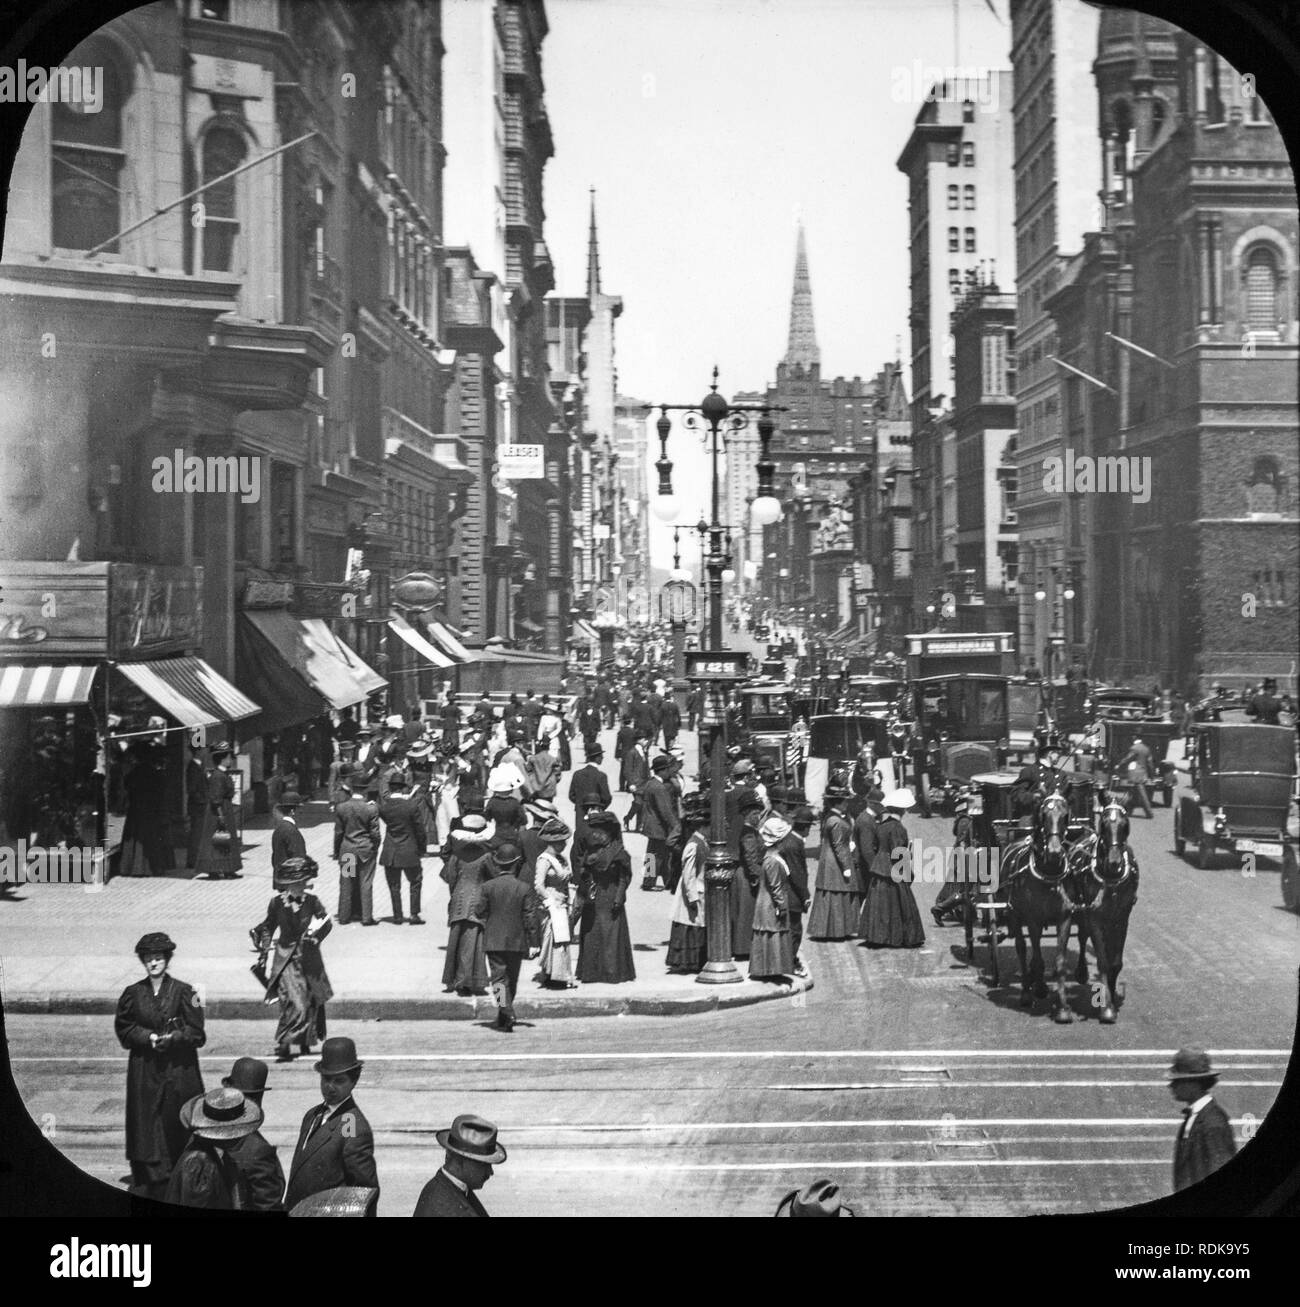 Late Victorian view of New York City. A view looking at 5th Avenue and 42nd Street. Streets are full of people, horse drawn carriage, and very early motor vehicles. - Stock Image